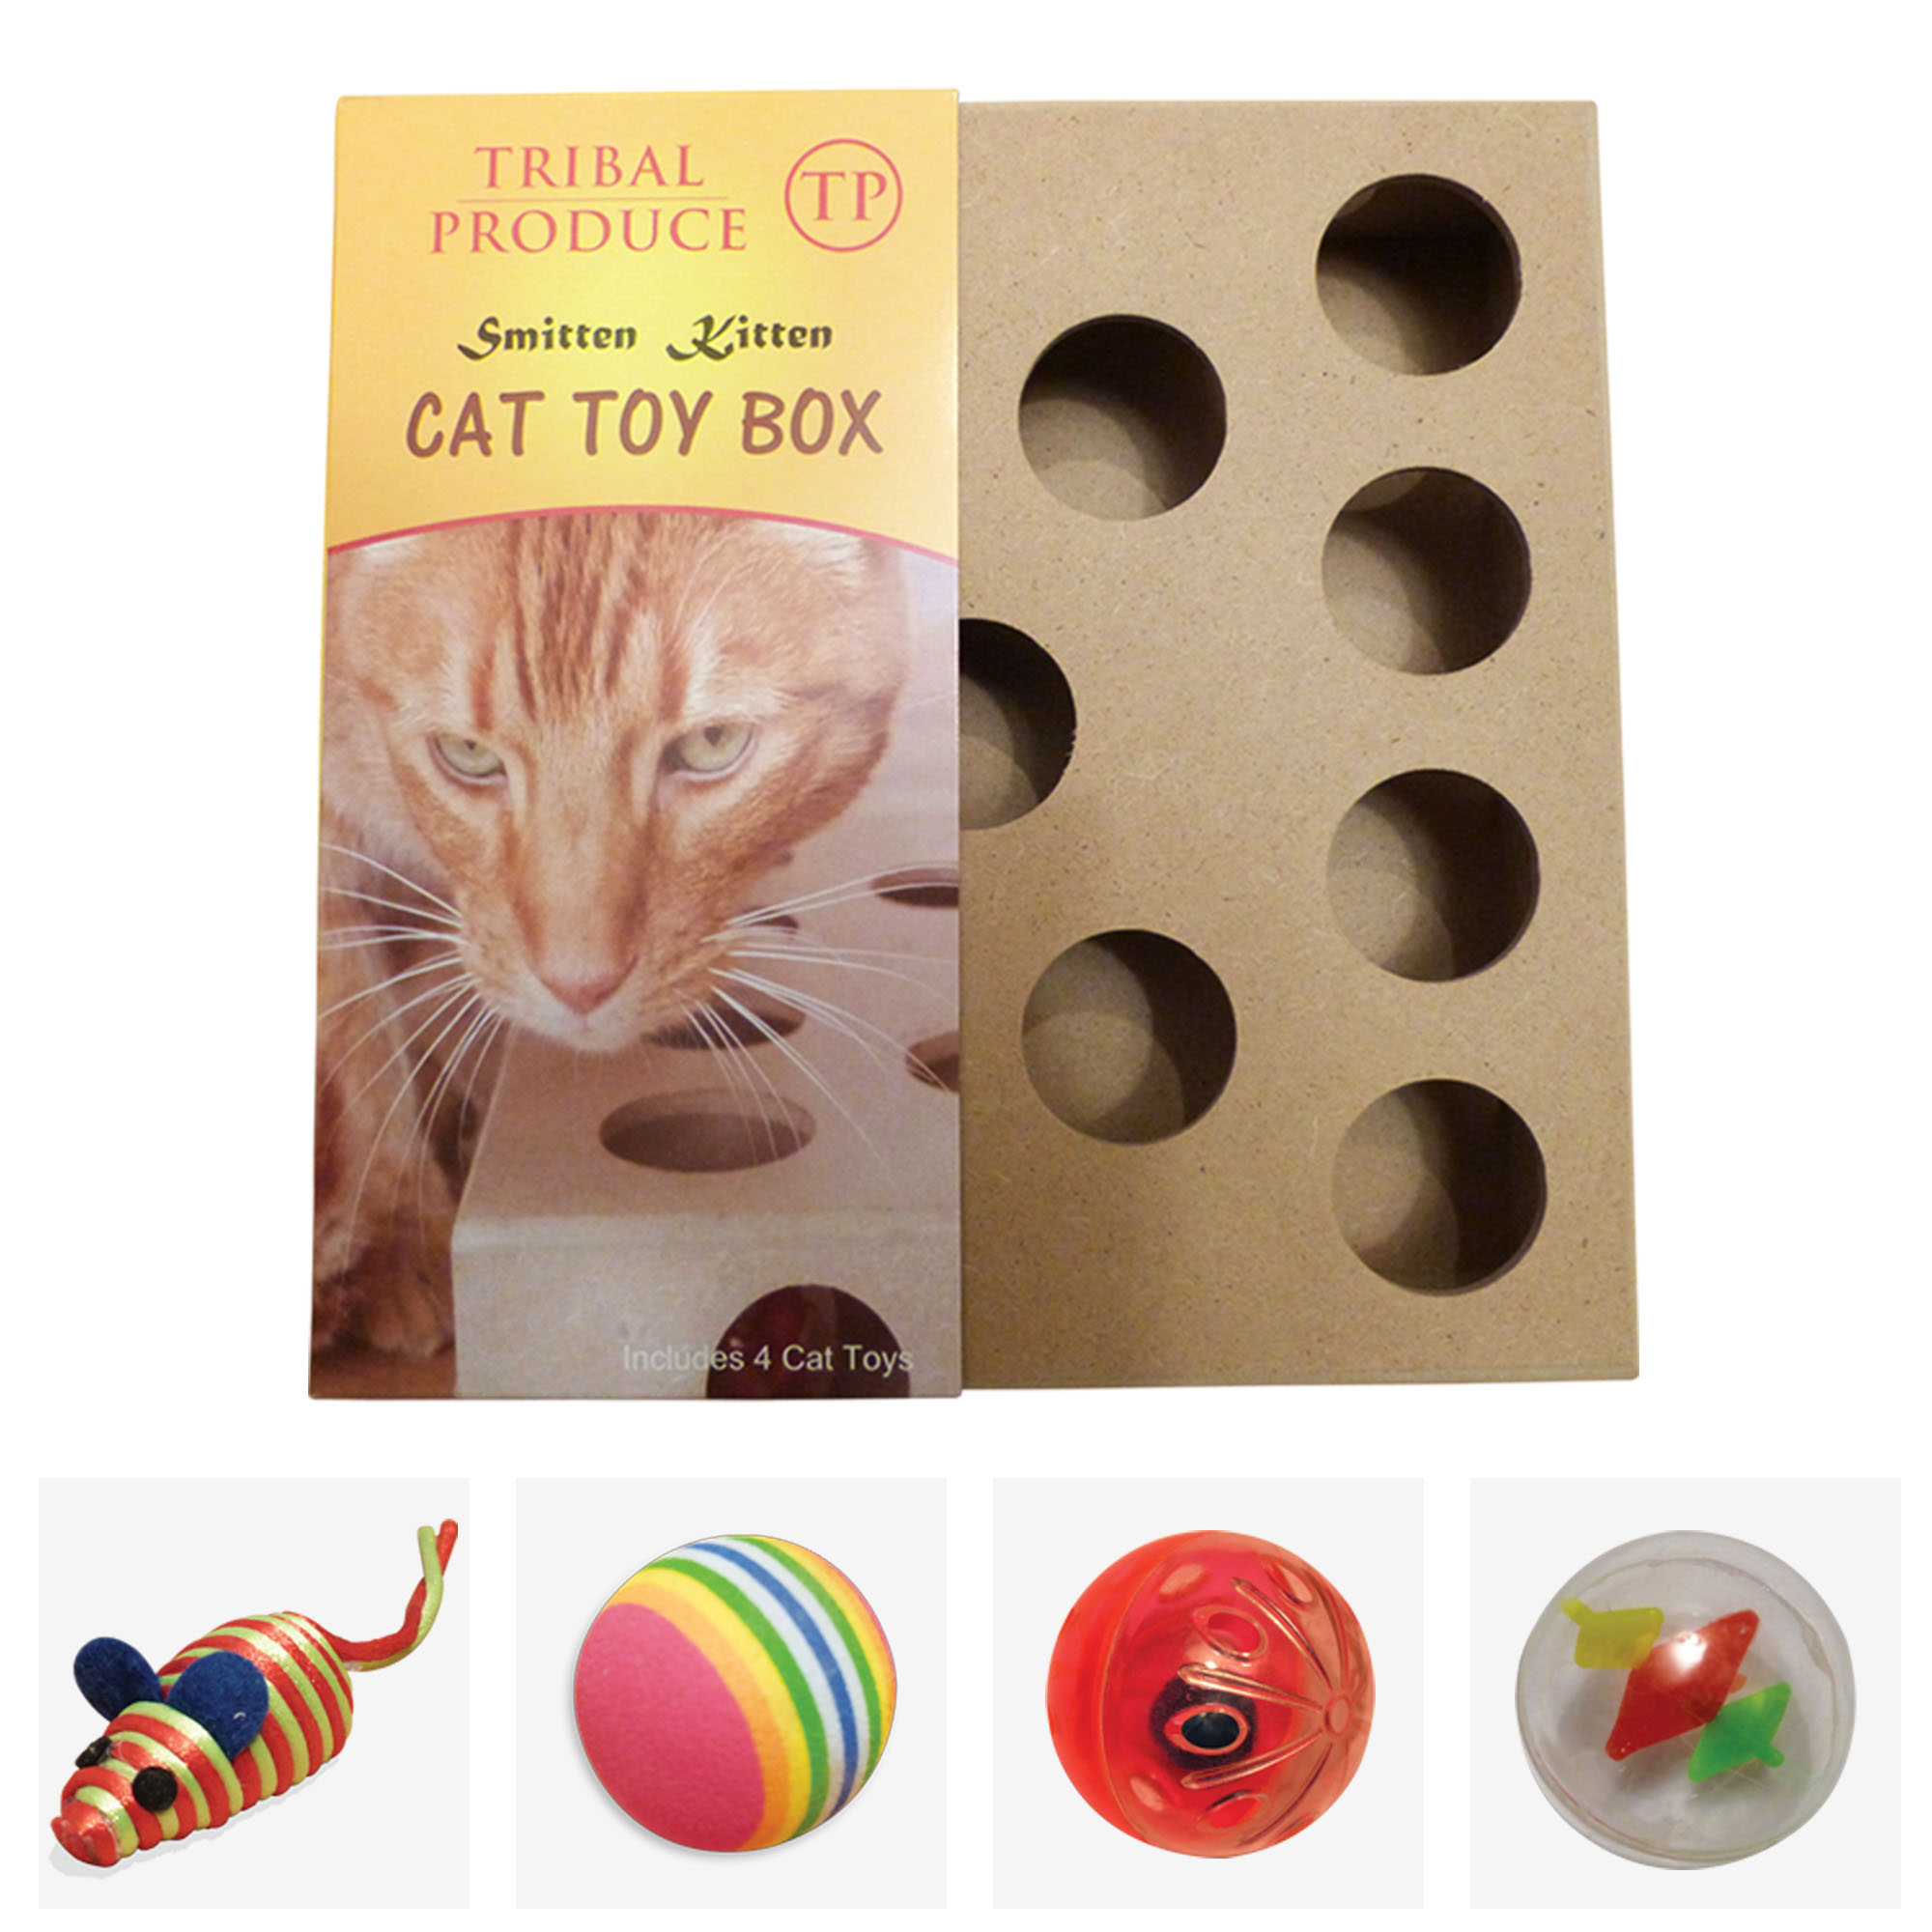 cat toy puzzle box tribal produce. Black Bedroom Furniture Sets. Home Design Ideas